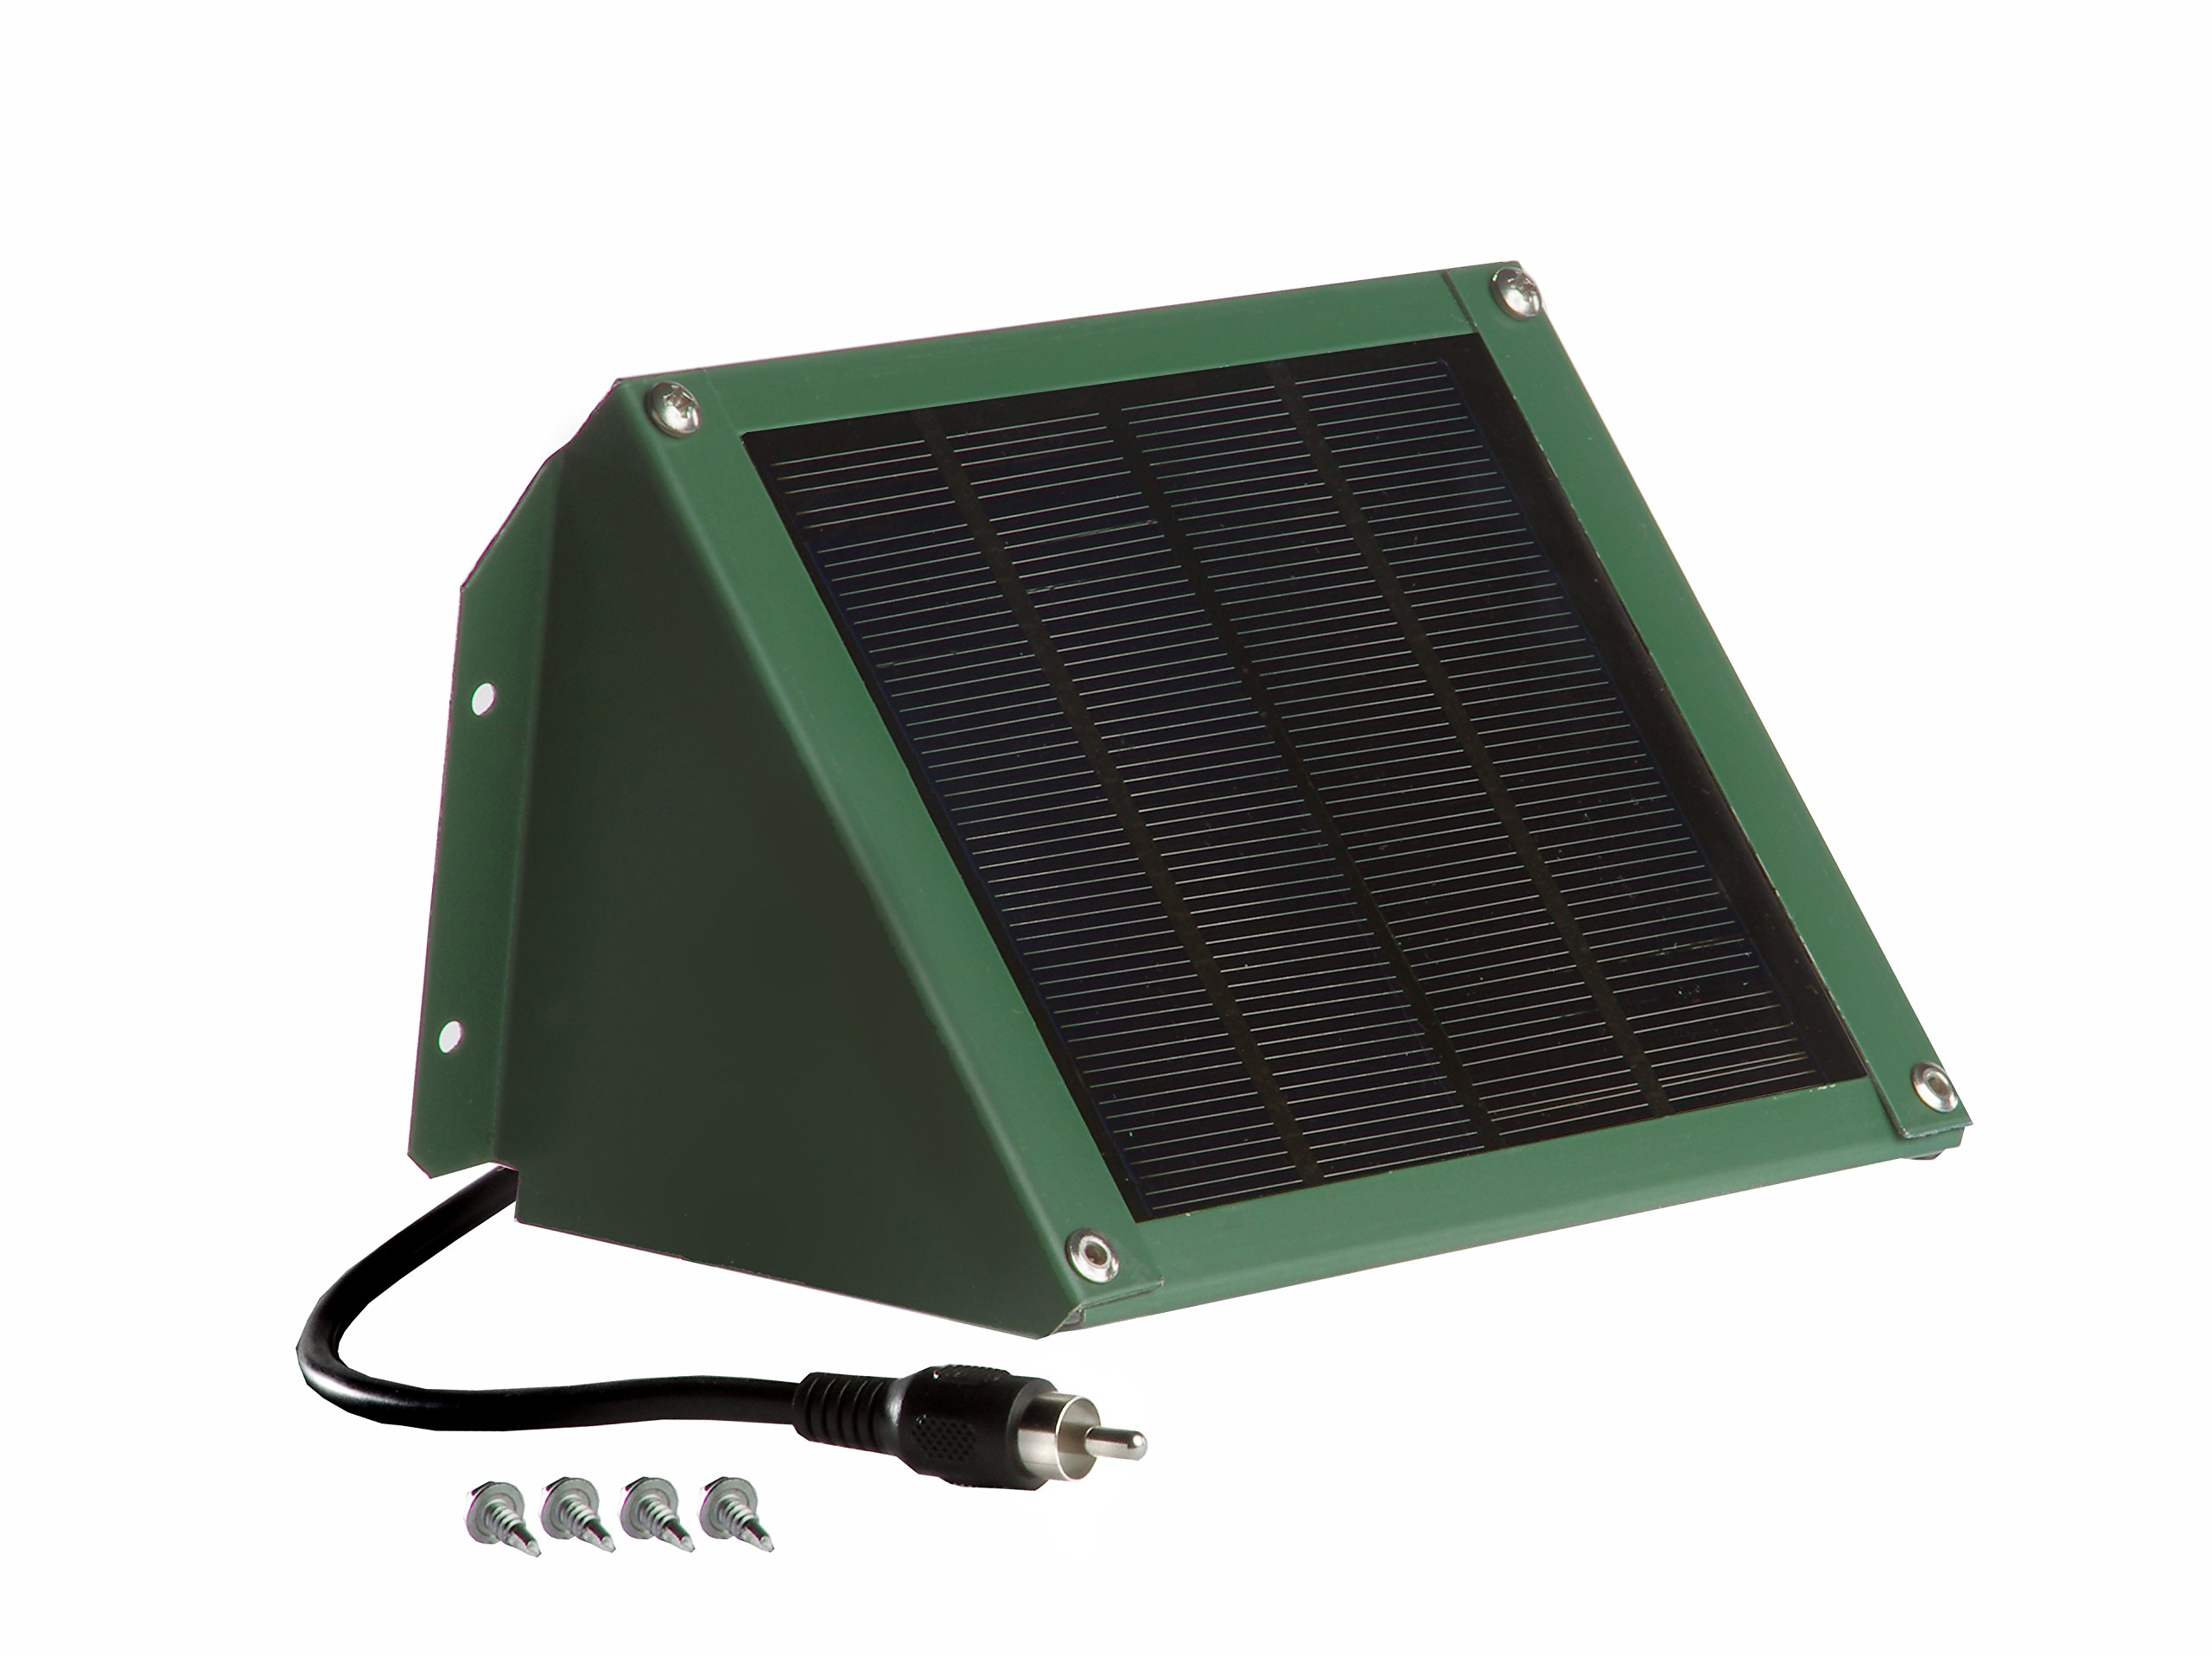 Sweeney Feeders SX212-GR Solar Charger for Directional Feeders -12 Volt 2 Watt, Green Finish